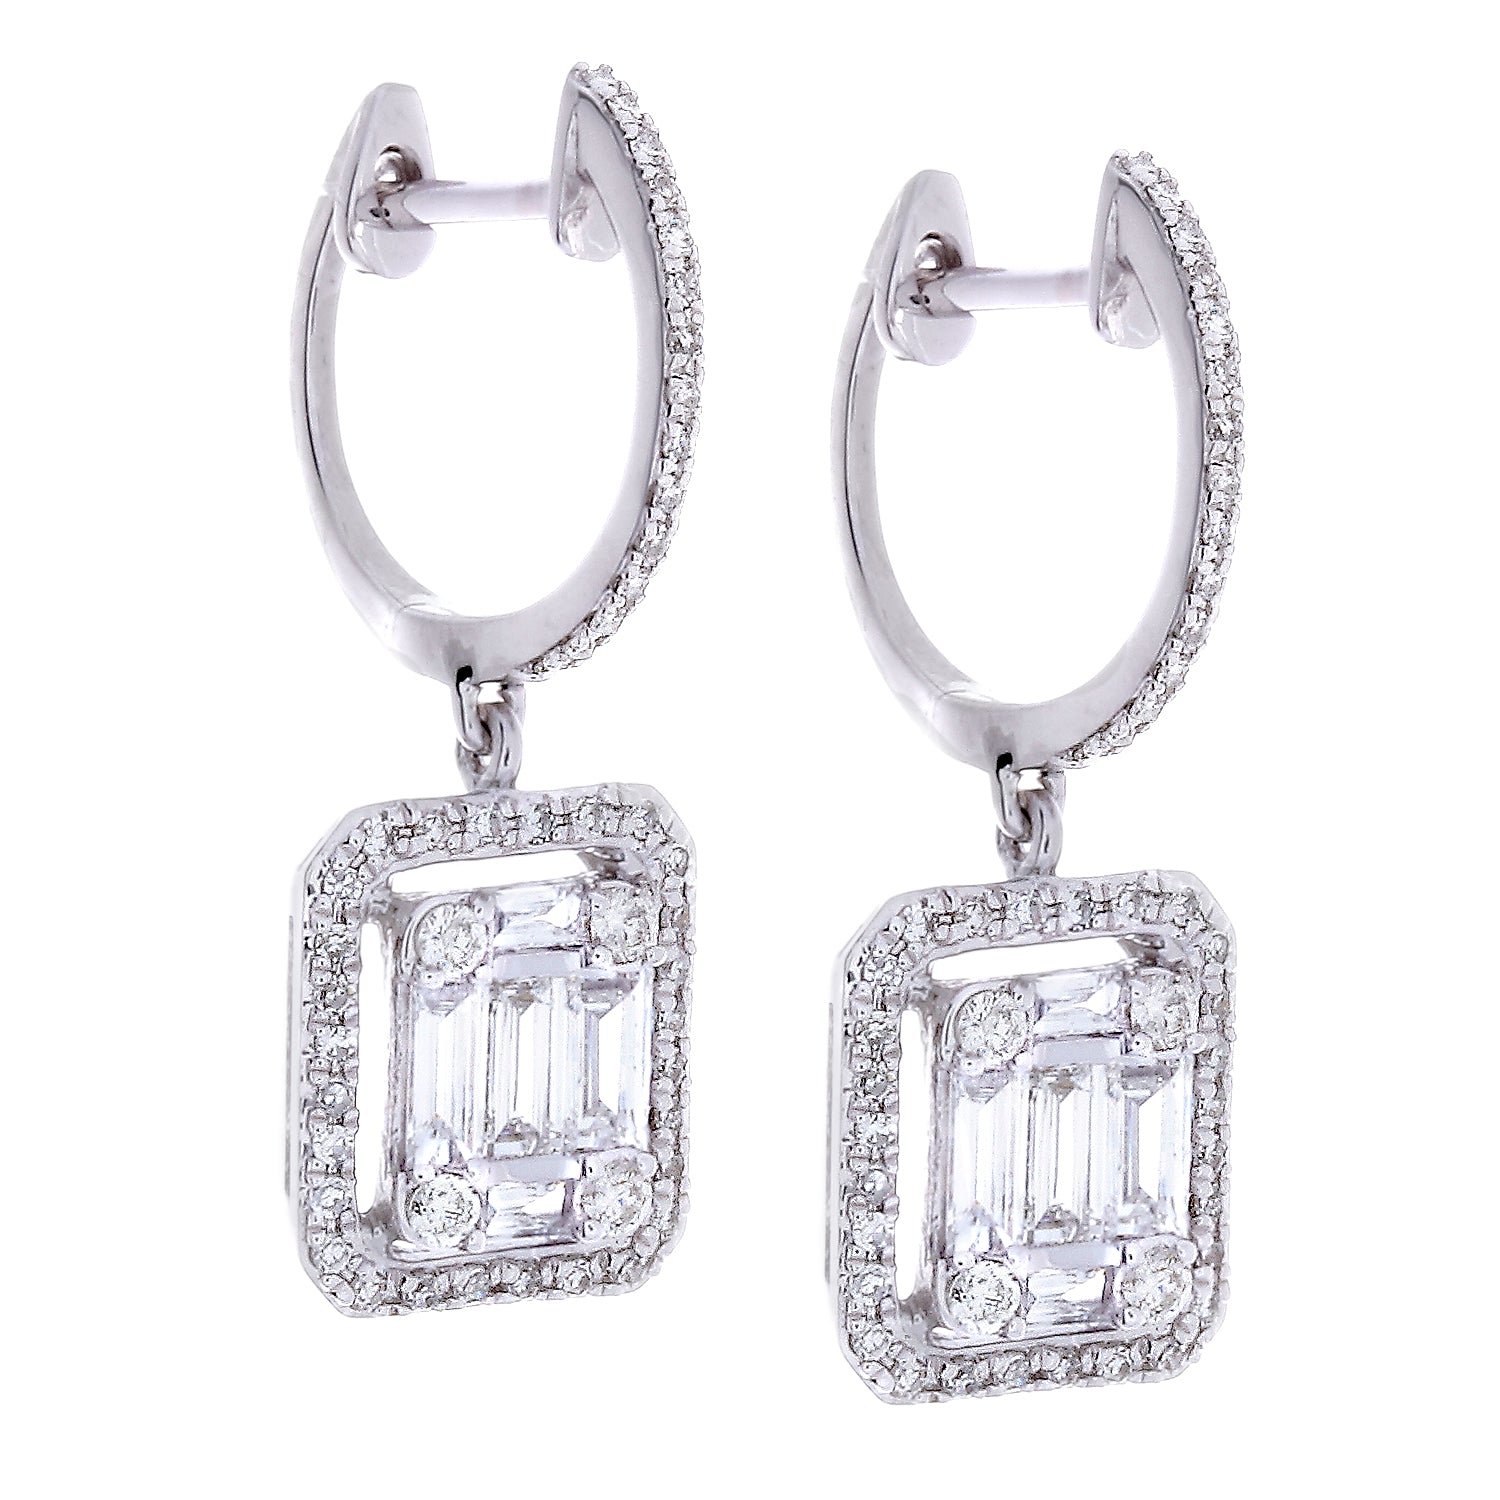 Diamonds & 14K White Gold Earrings - SOLD/CAN BE SPECIAL ORDERED WITH 4-6 WEEKS DELIVERY TIME FRAME